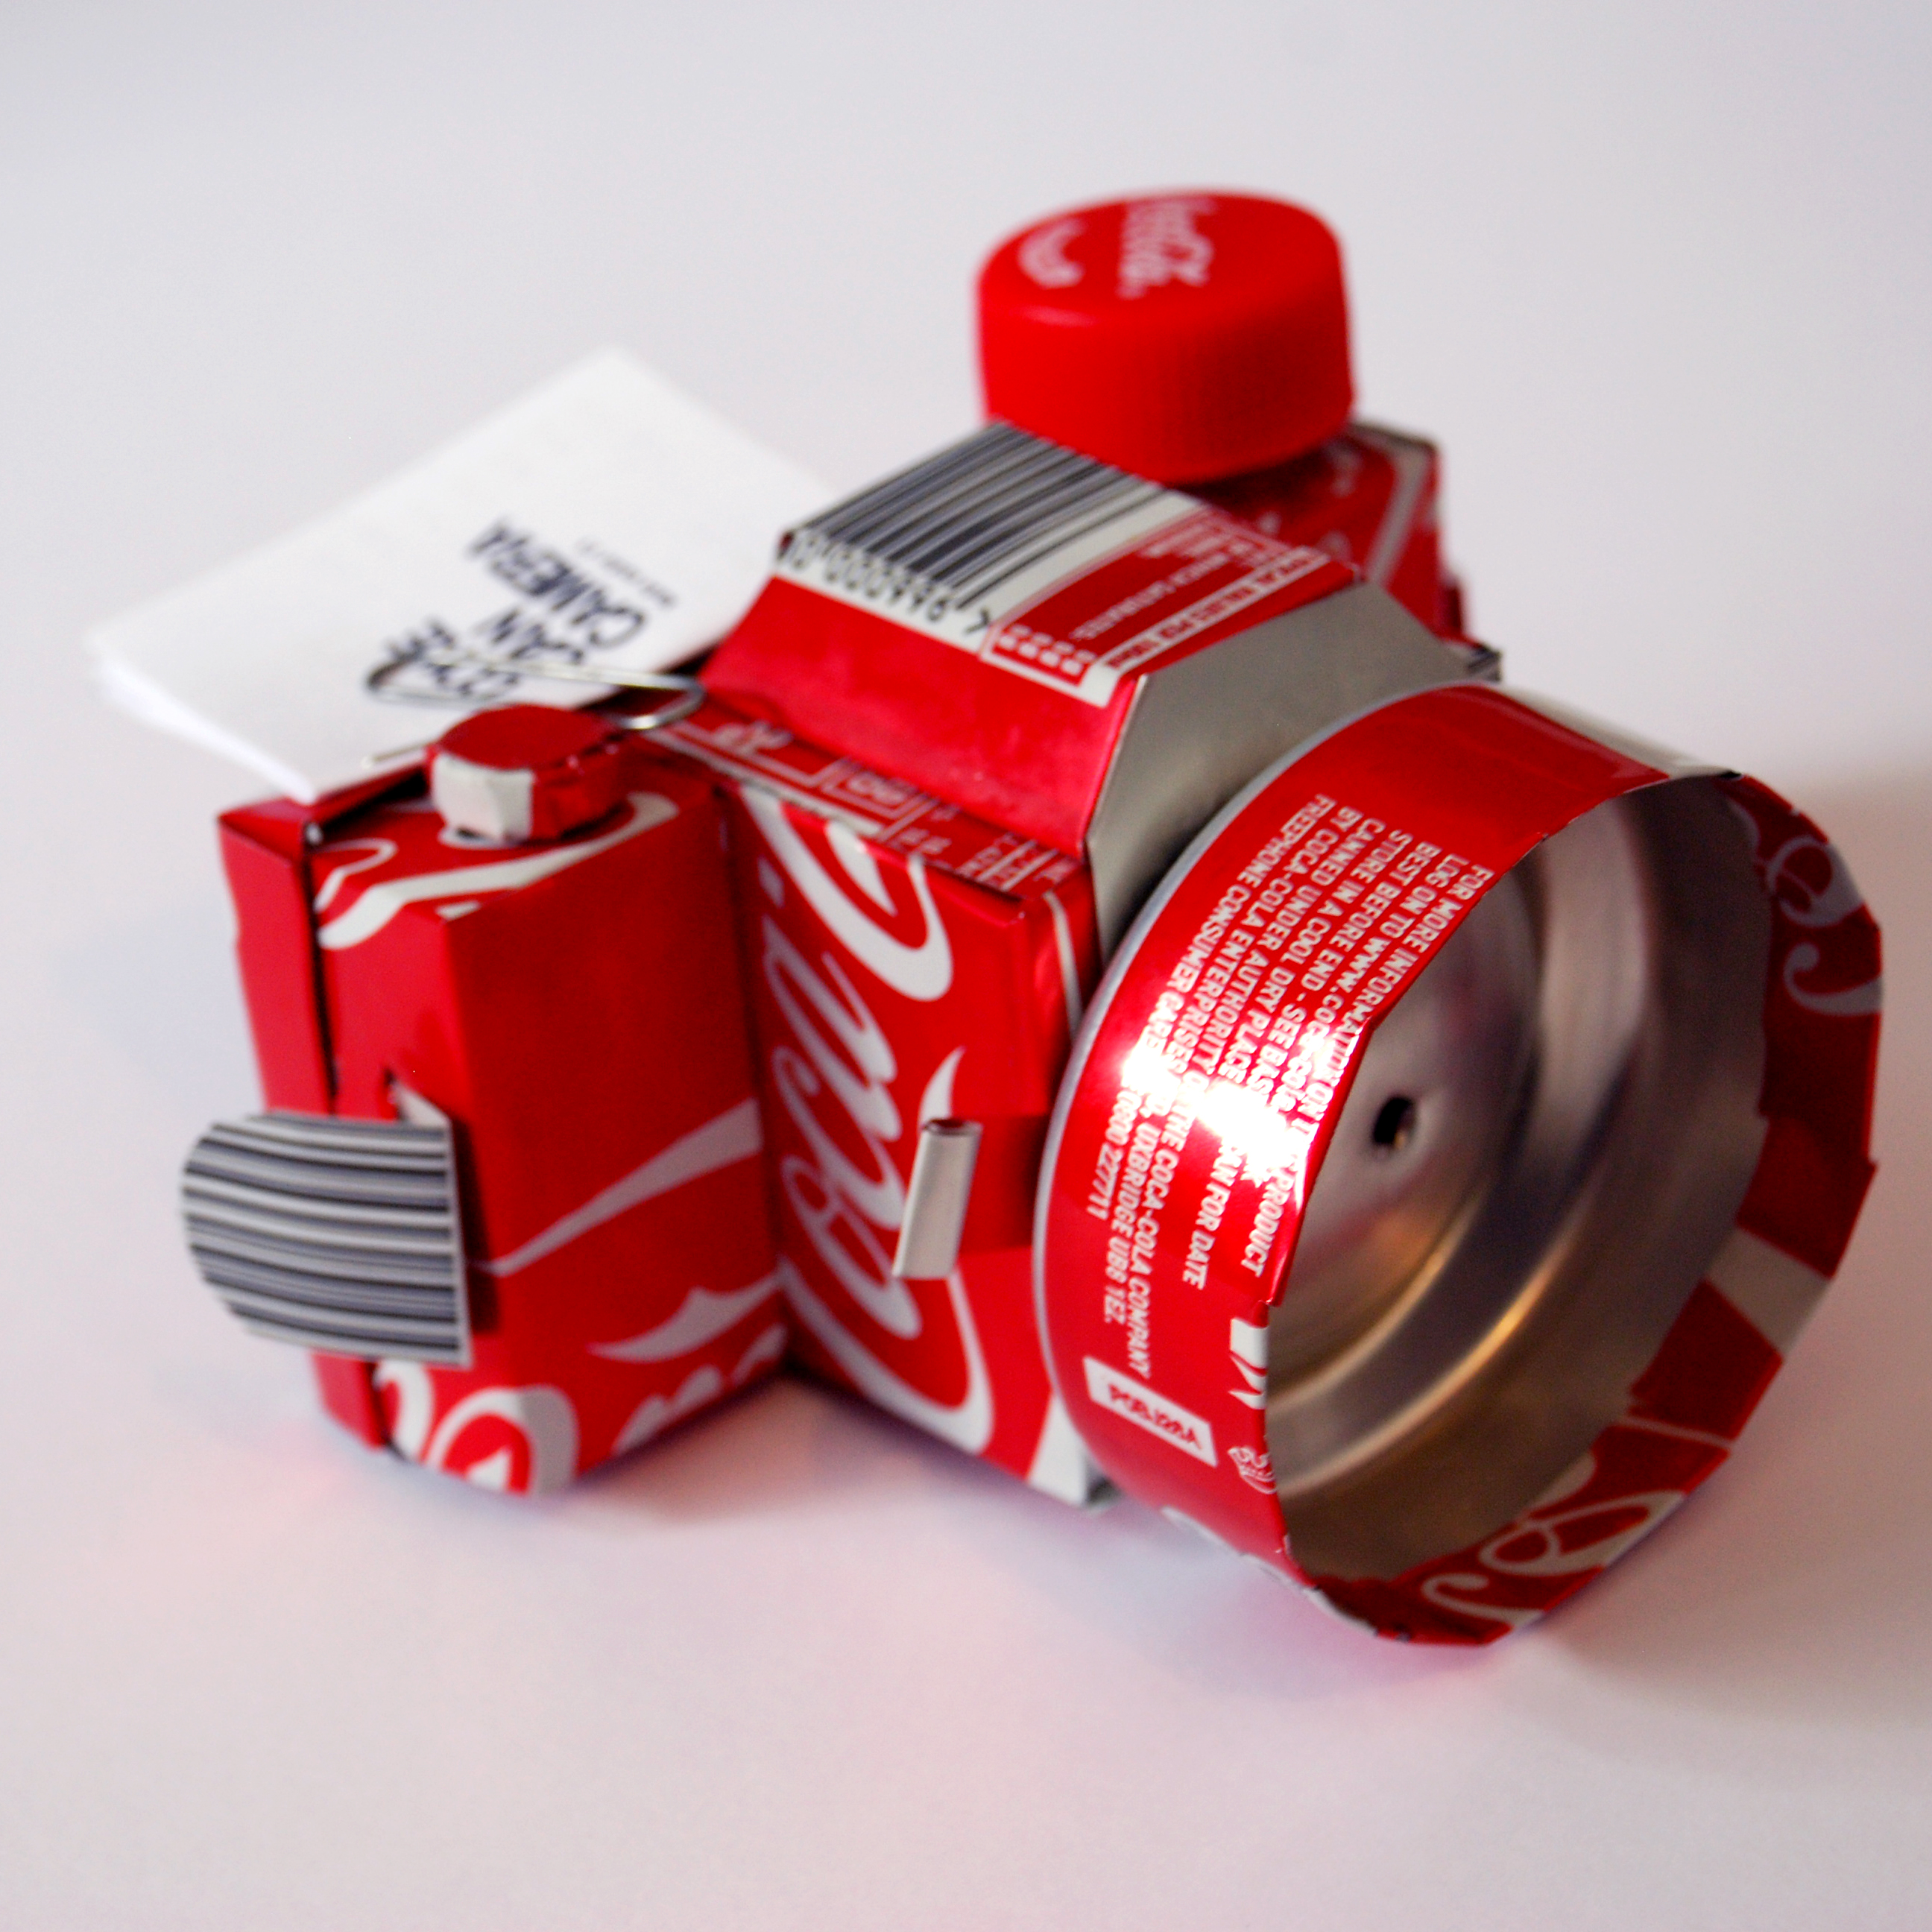 camera, can, amazing, creative